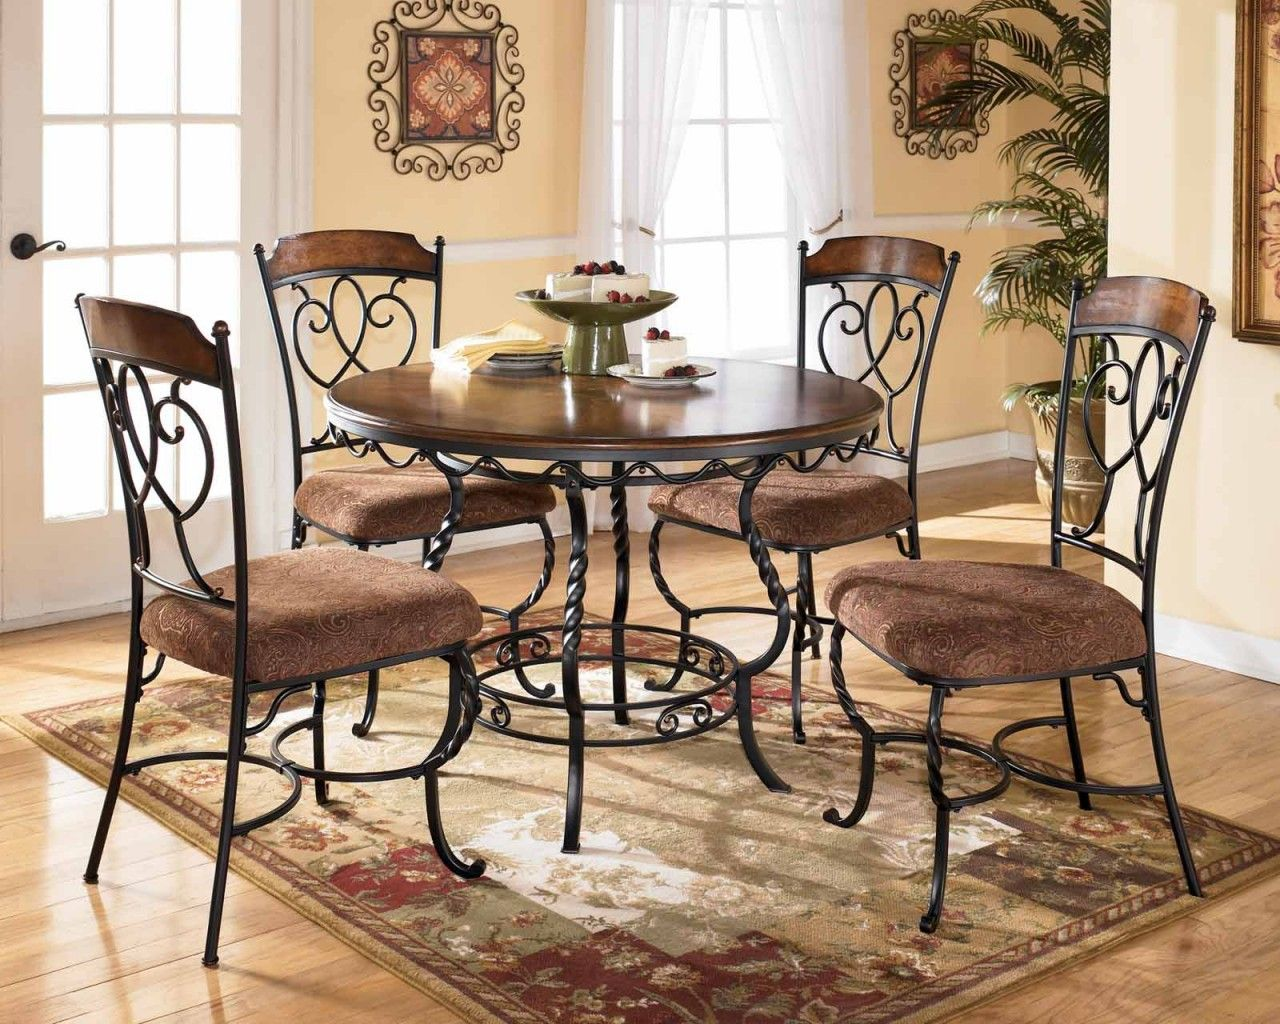 kitchen tables and chairs sets Table Dining Chairs  : 60bdeba9bd408203eaa76f1b073e1586 from www.pinterest.com size 1280 x 1024 jpeg 247kB